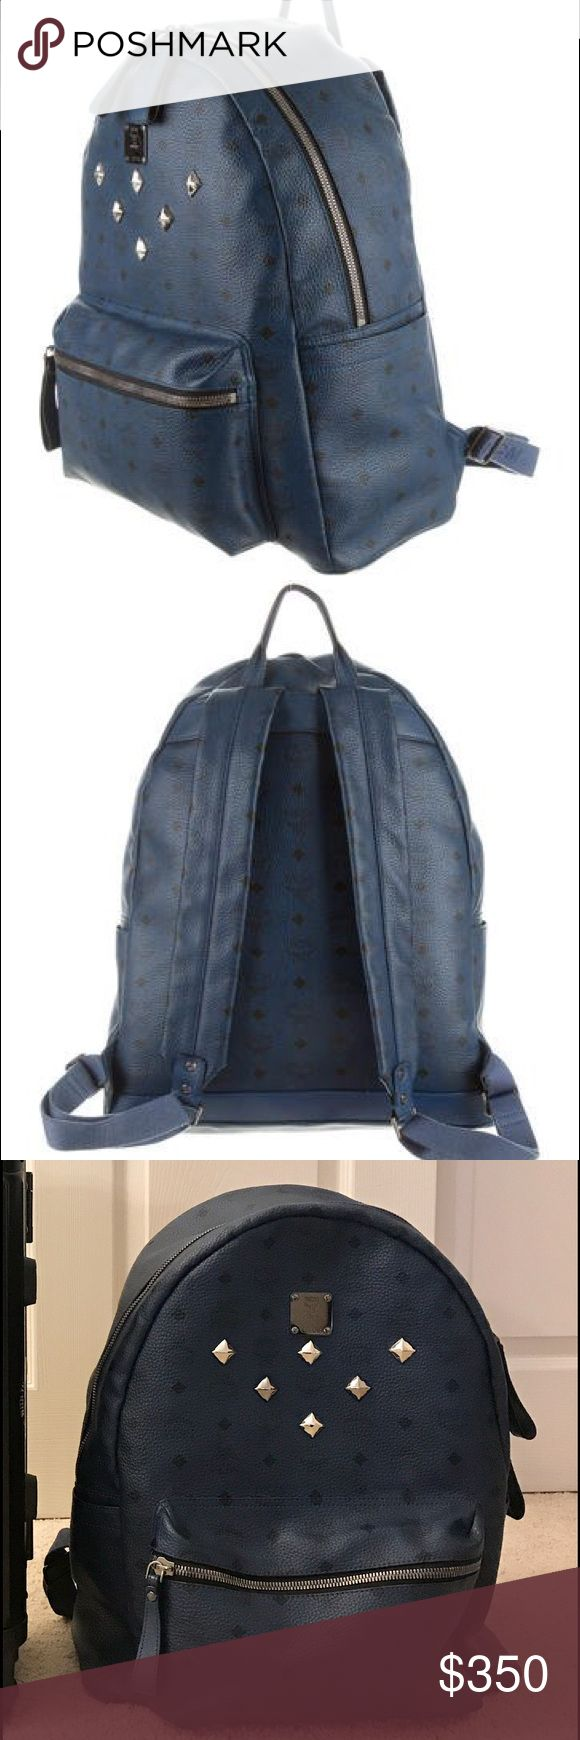 📘Authentic MCM Large Stark Backpack📘 -Size: 18 X 15 X 6 inches -Padded Laptop Compartment -Front zipped pocket -2 side flat pockets Perfect for School/Work/Travel 💎Mint Condition💎 Price is FIRM MCM Bags Backpacks